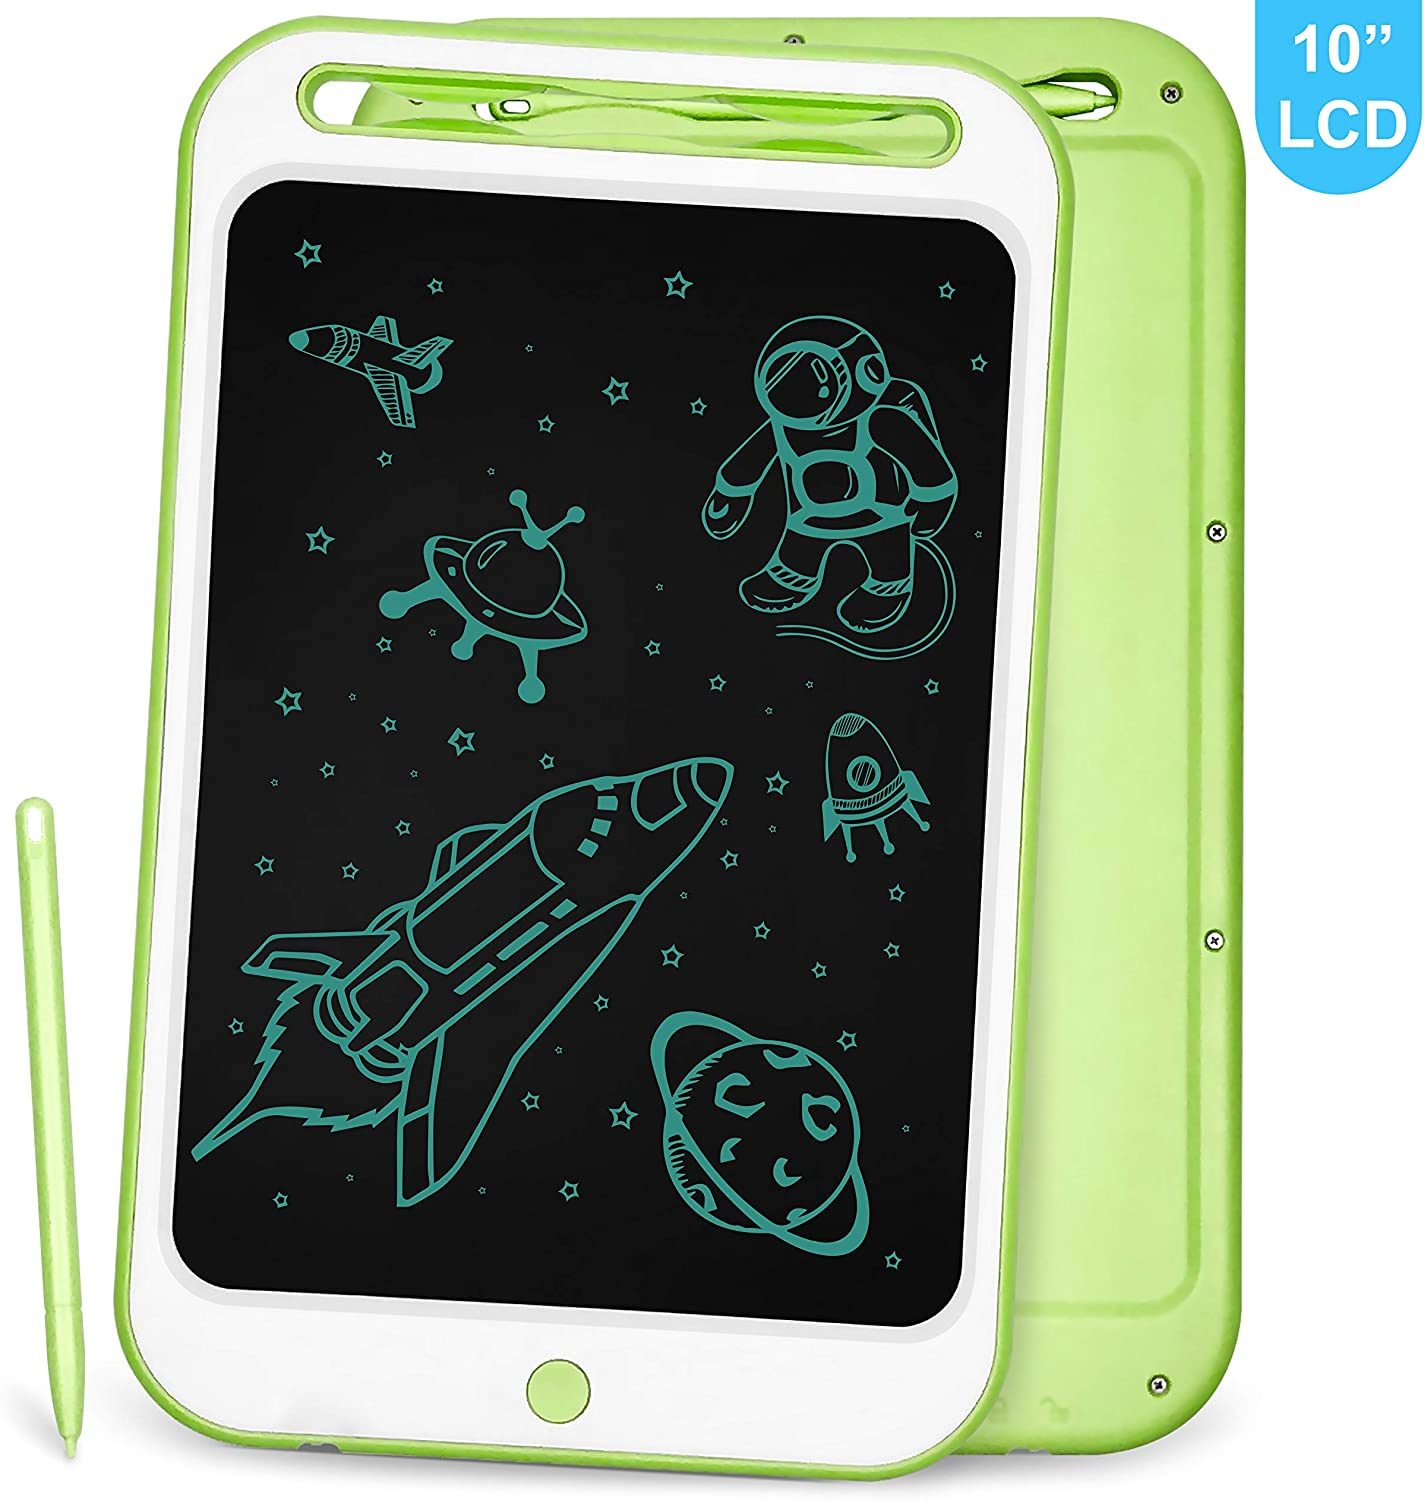 LCD Writing Tablet Richgv 10 Inches Electronic Writing & Drawing Doodle Board with Memory Lock Digital Writing Pad for Kids and Adults at Home, School, Office